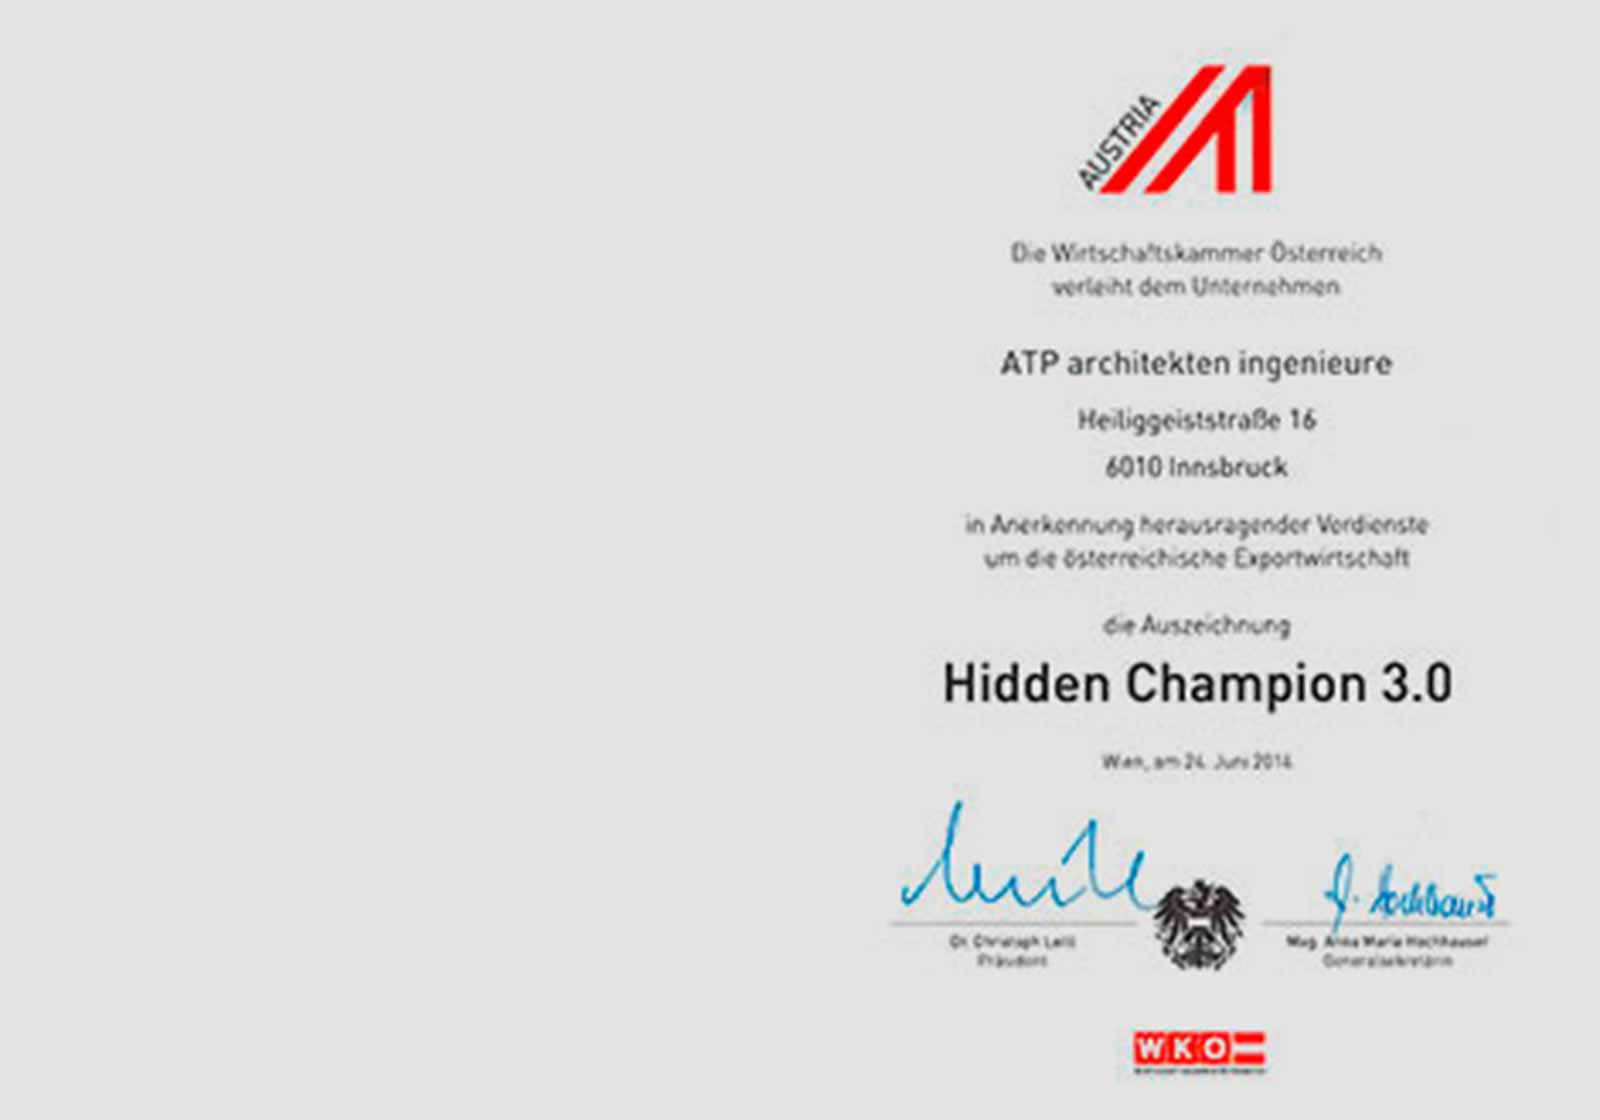 """Hidden Champions"" prize for ATP"